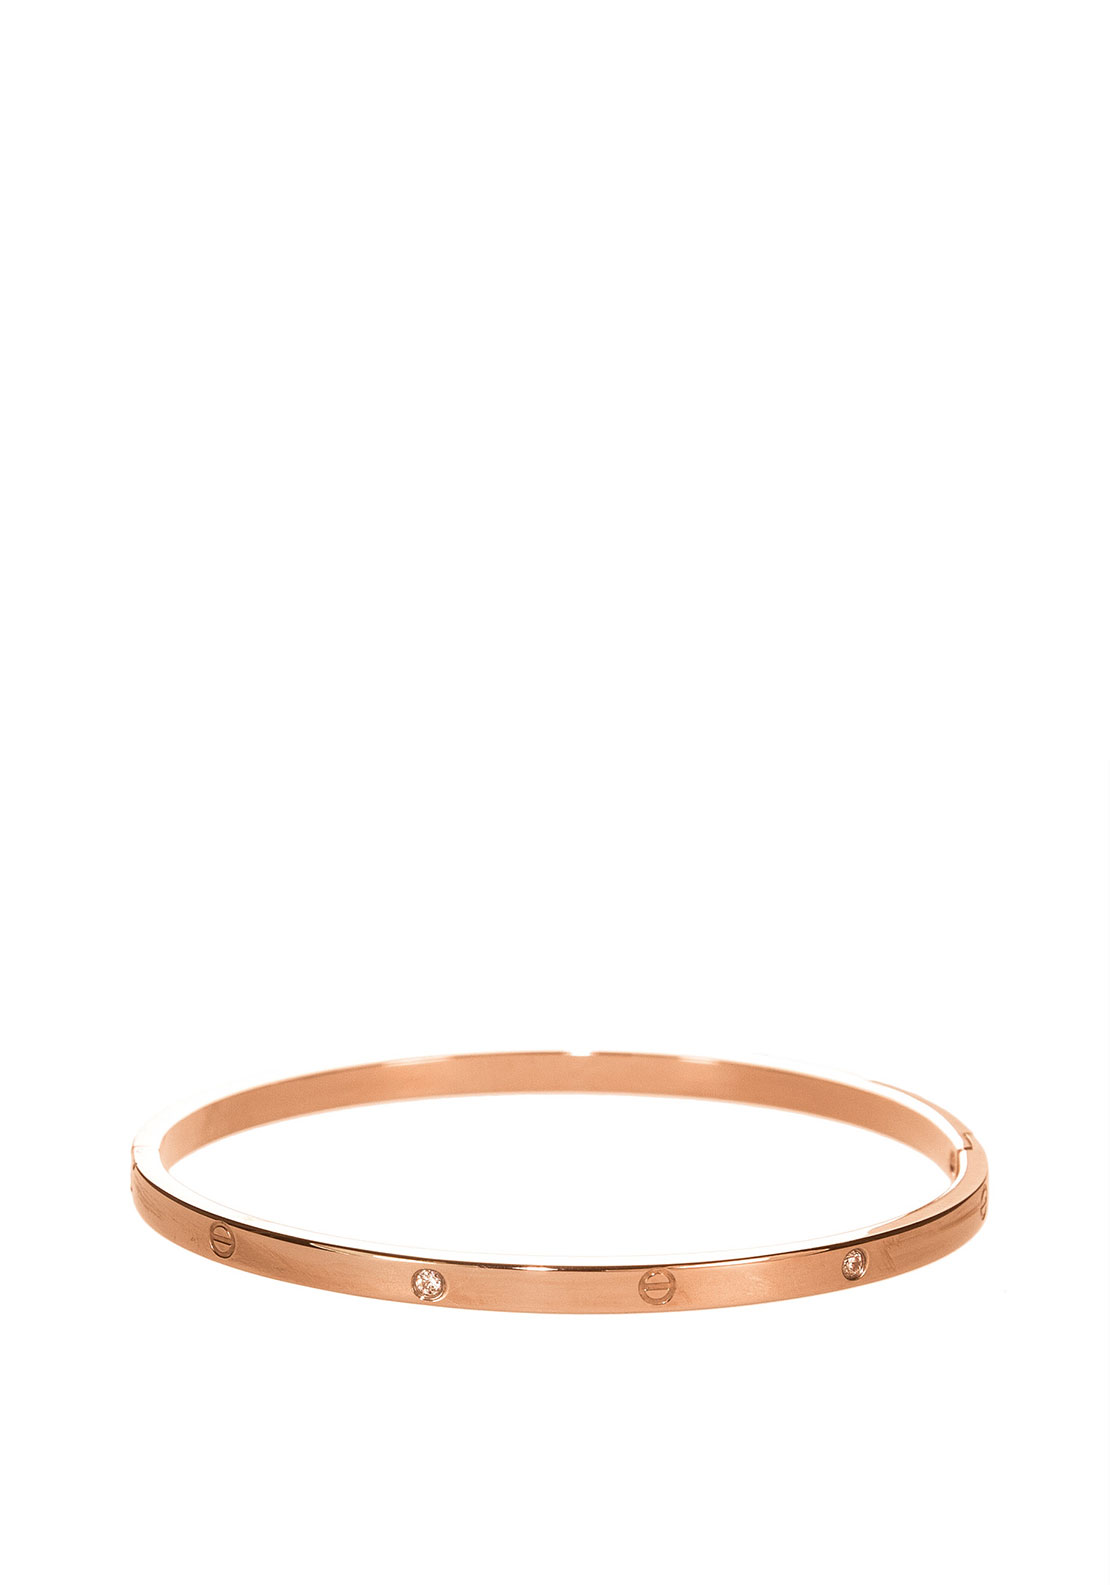 Absolute Clear Stone Set Bangle, Rose Gold